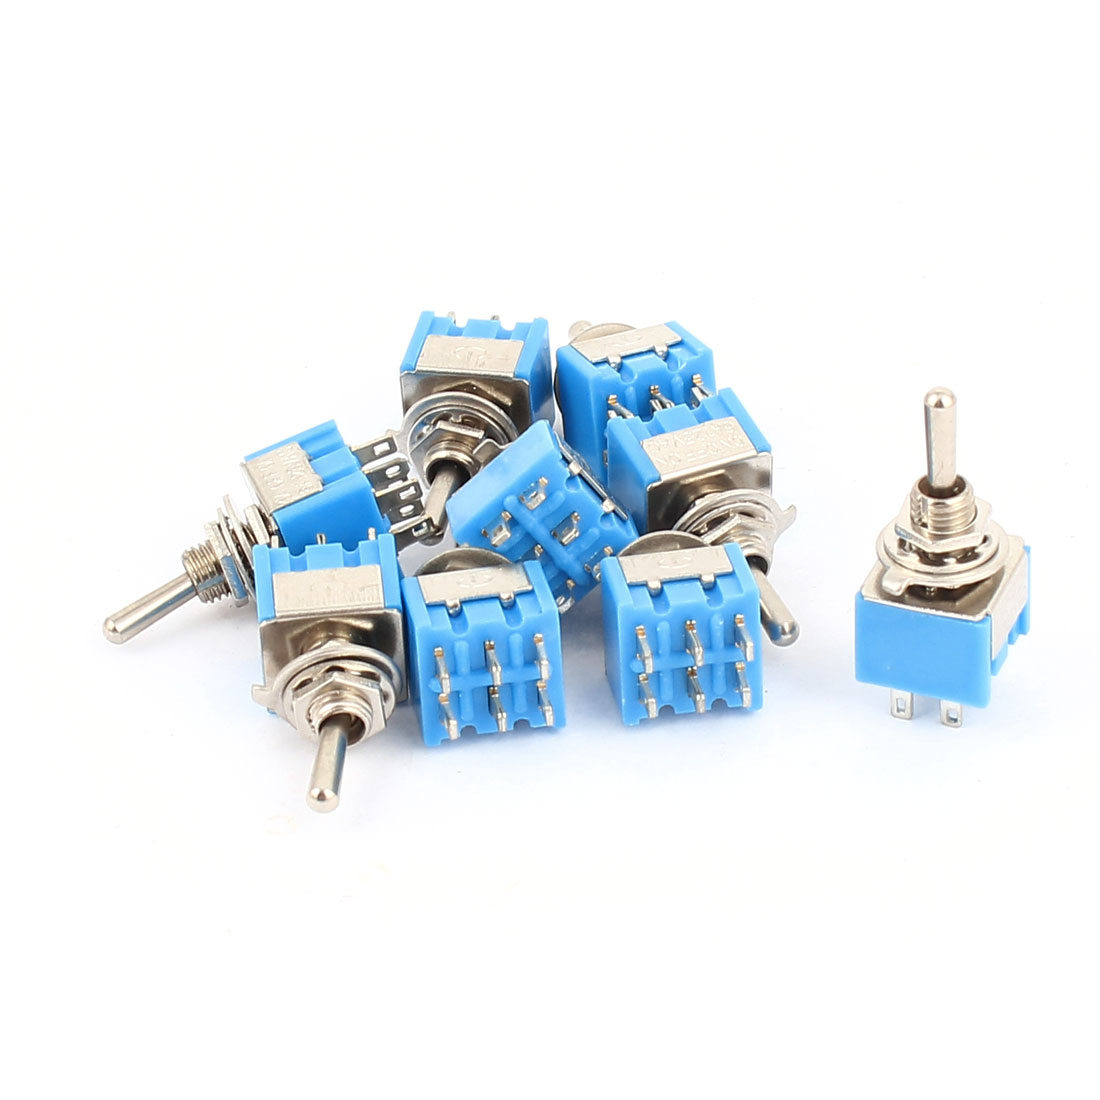 10pcs AC 125V 6A 6 Terminals 3 Positions ON-OFF-ON 6mm Threaded DPDT Latching Mini Toggle Switch